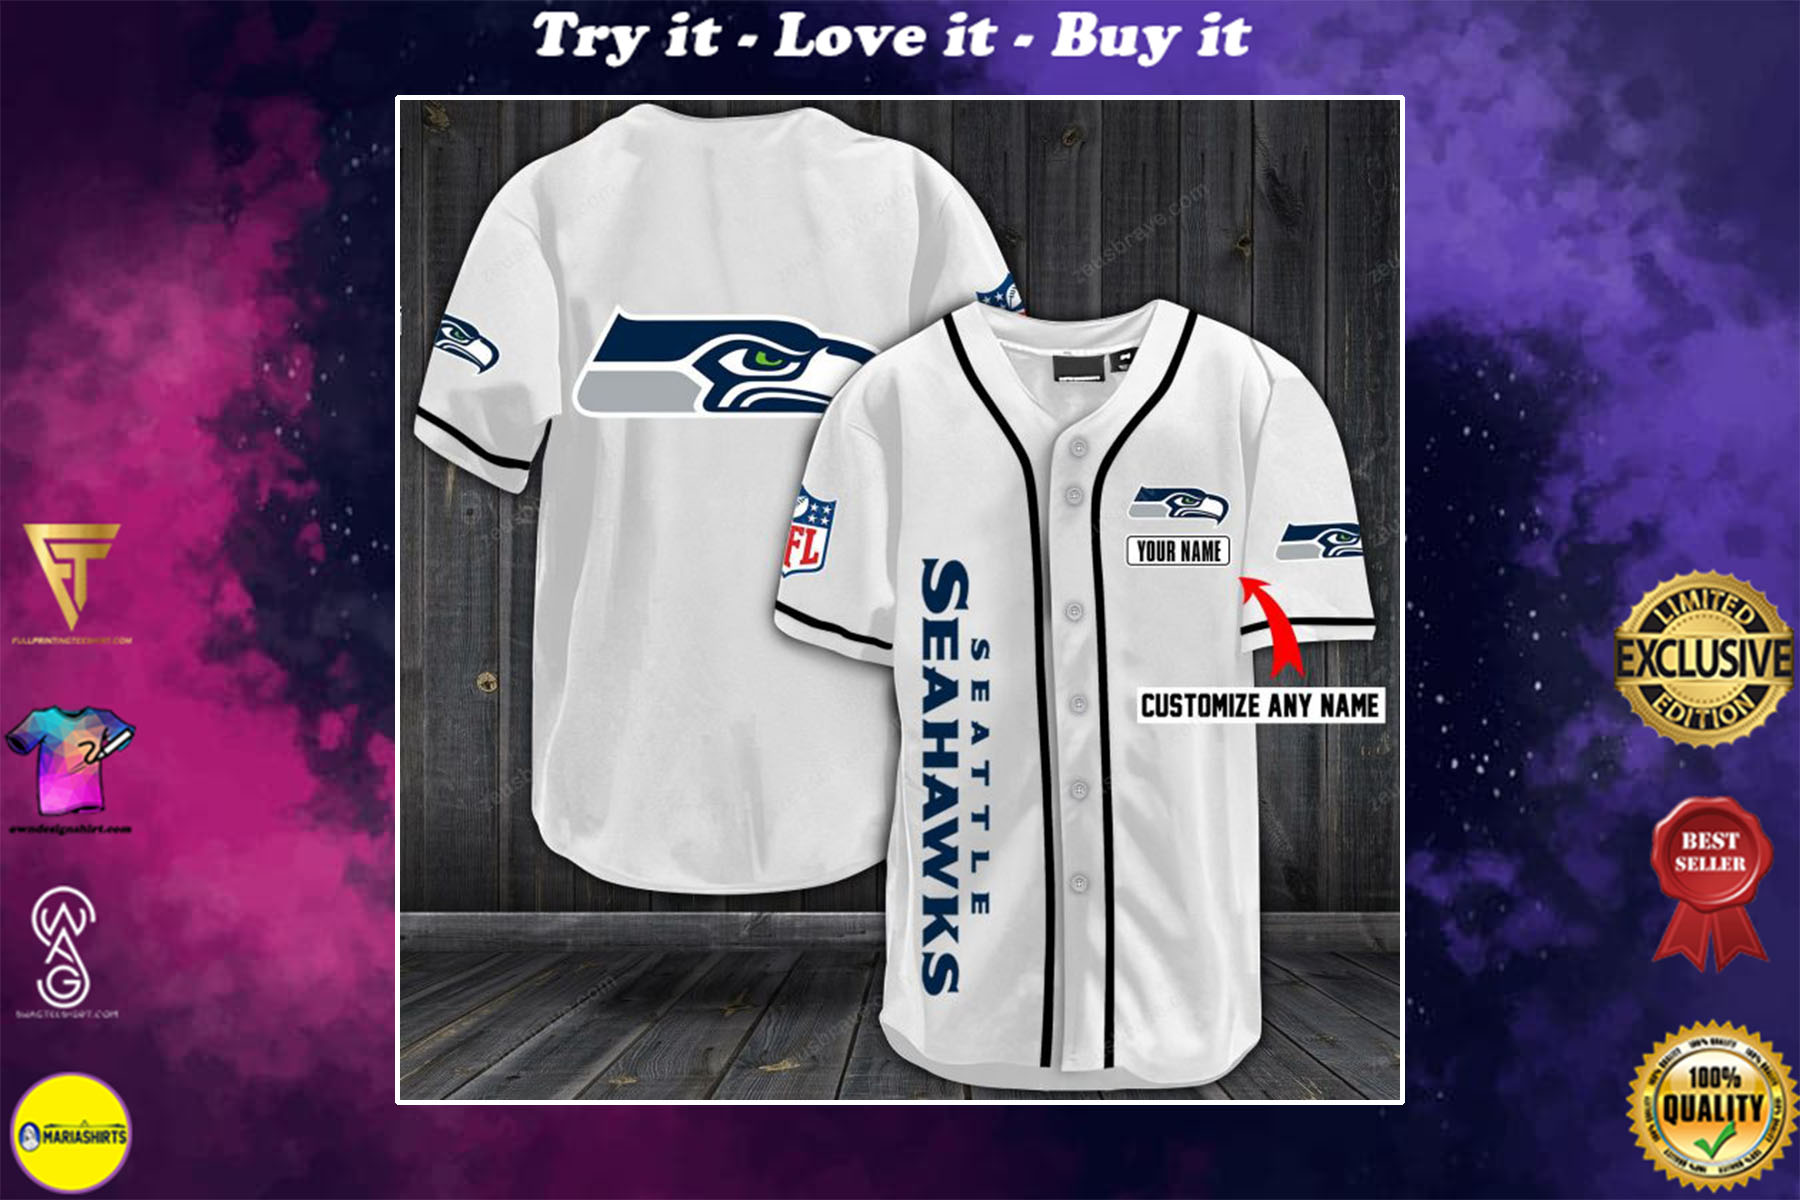 [special edition] personalized name jersey seattle seahawks full printing shirt - maria